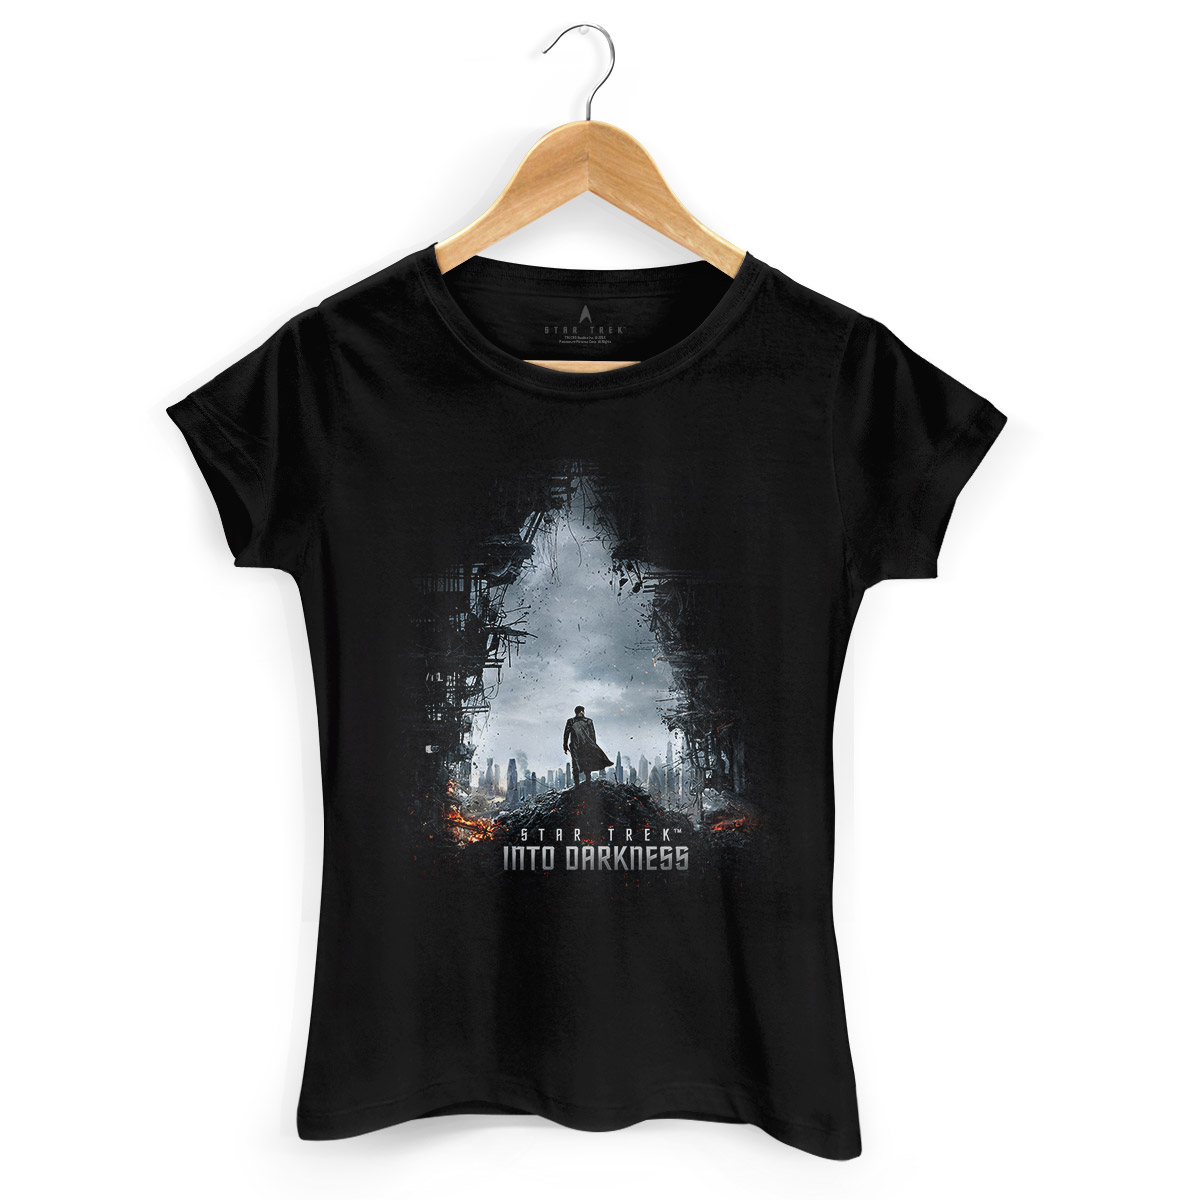 Camiseta Feminina Star Trek Into Darkness